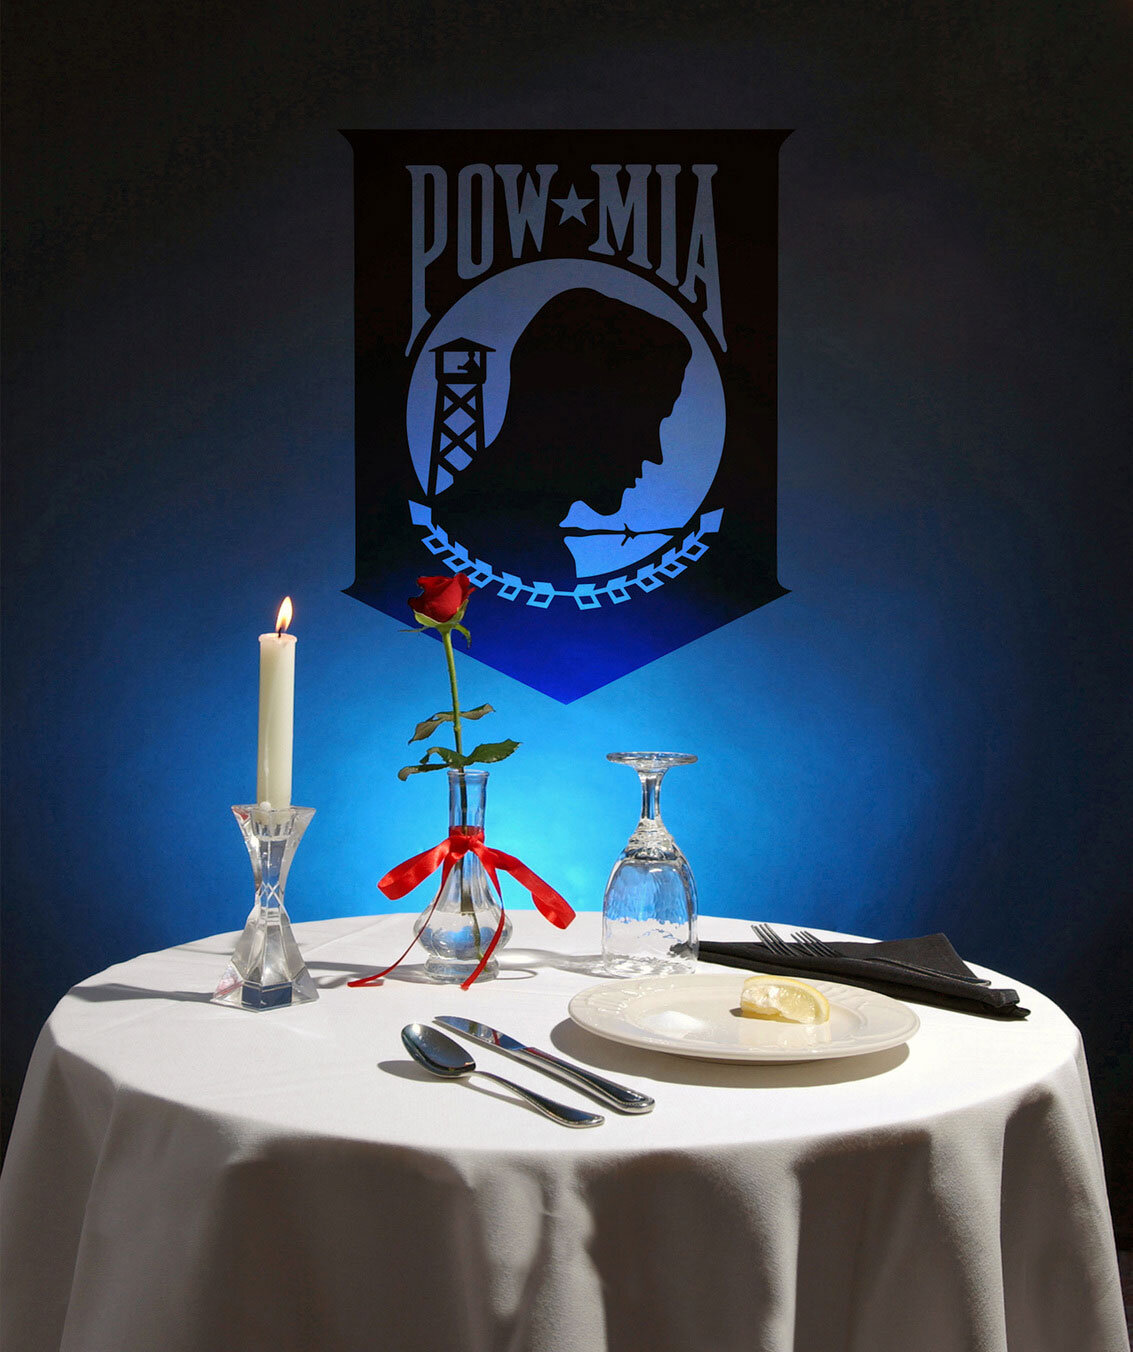 POW/MIA table also known as the Missing Man table